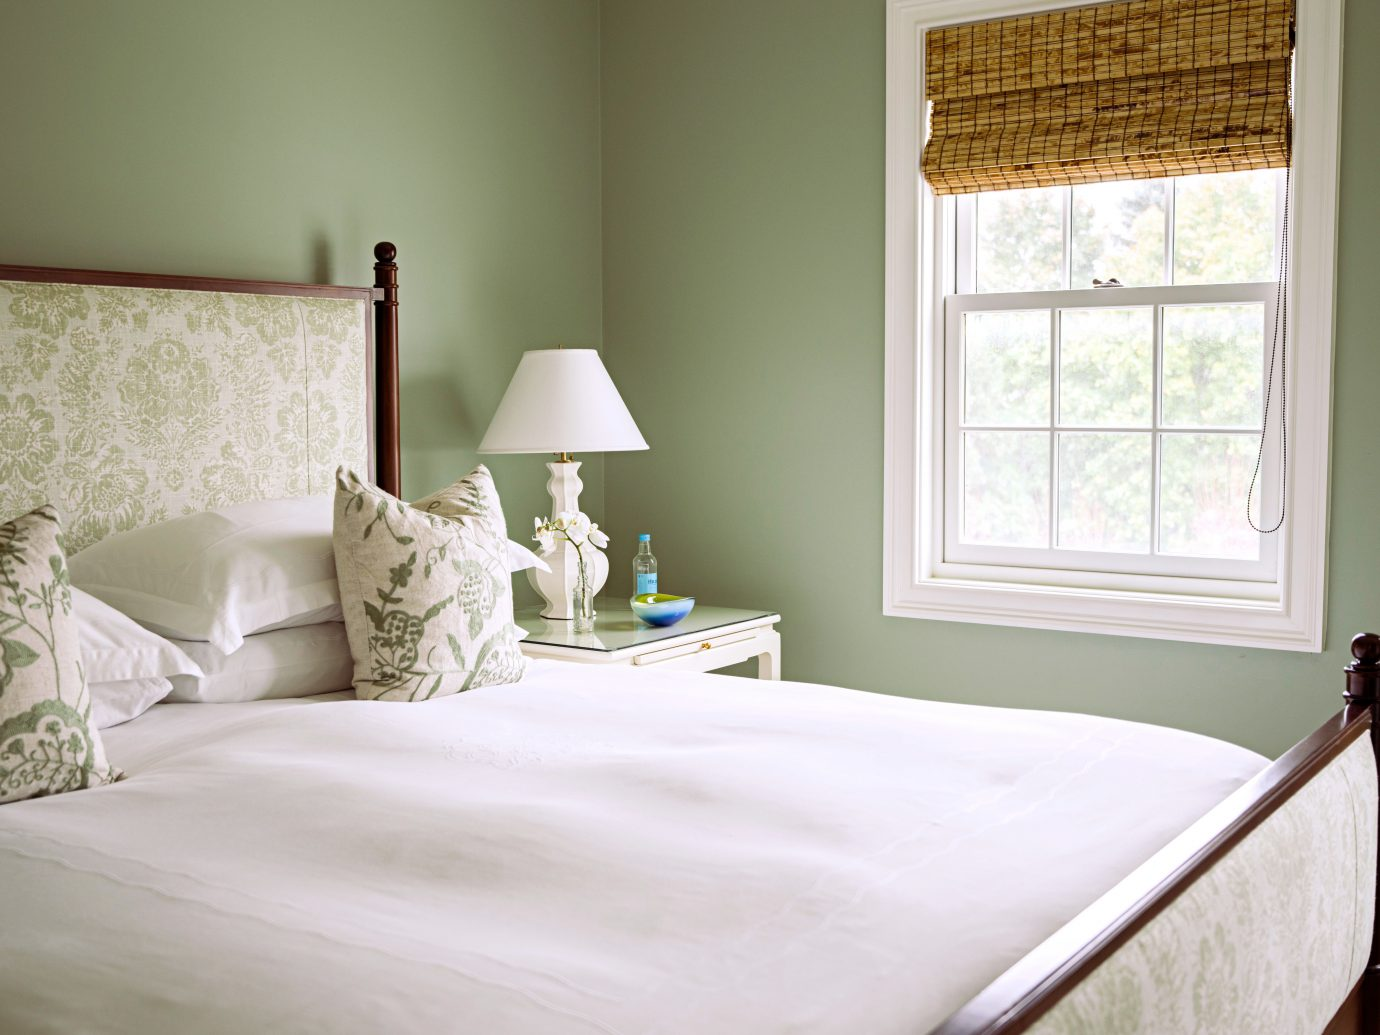 Beach Bedroom Country Family Golf Luxury Modern Resort South Fork Sport Suite The Hamptons bed indoor wall window room property hotel pillow interior design cottage floor home furniture bed sheet textile bed frame window covering